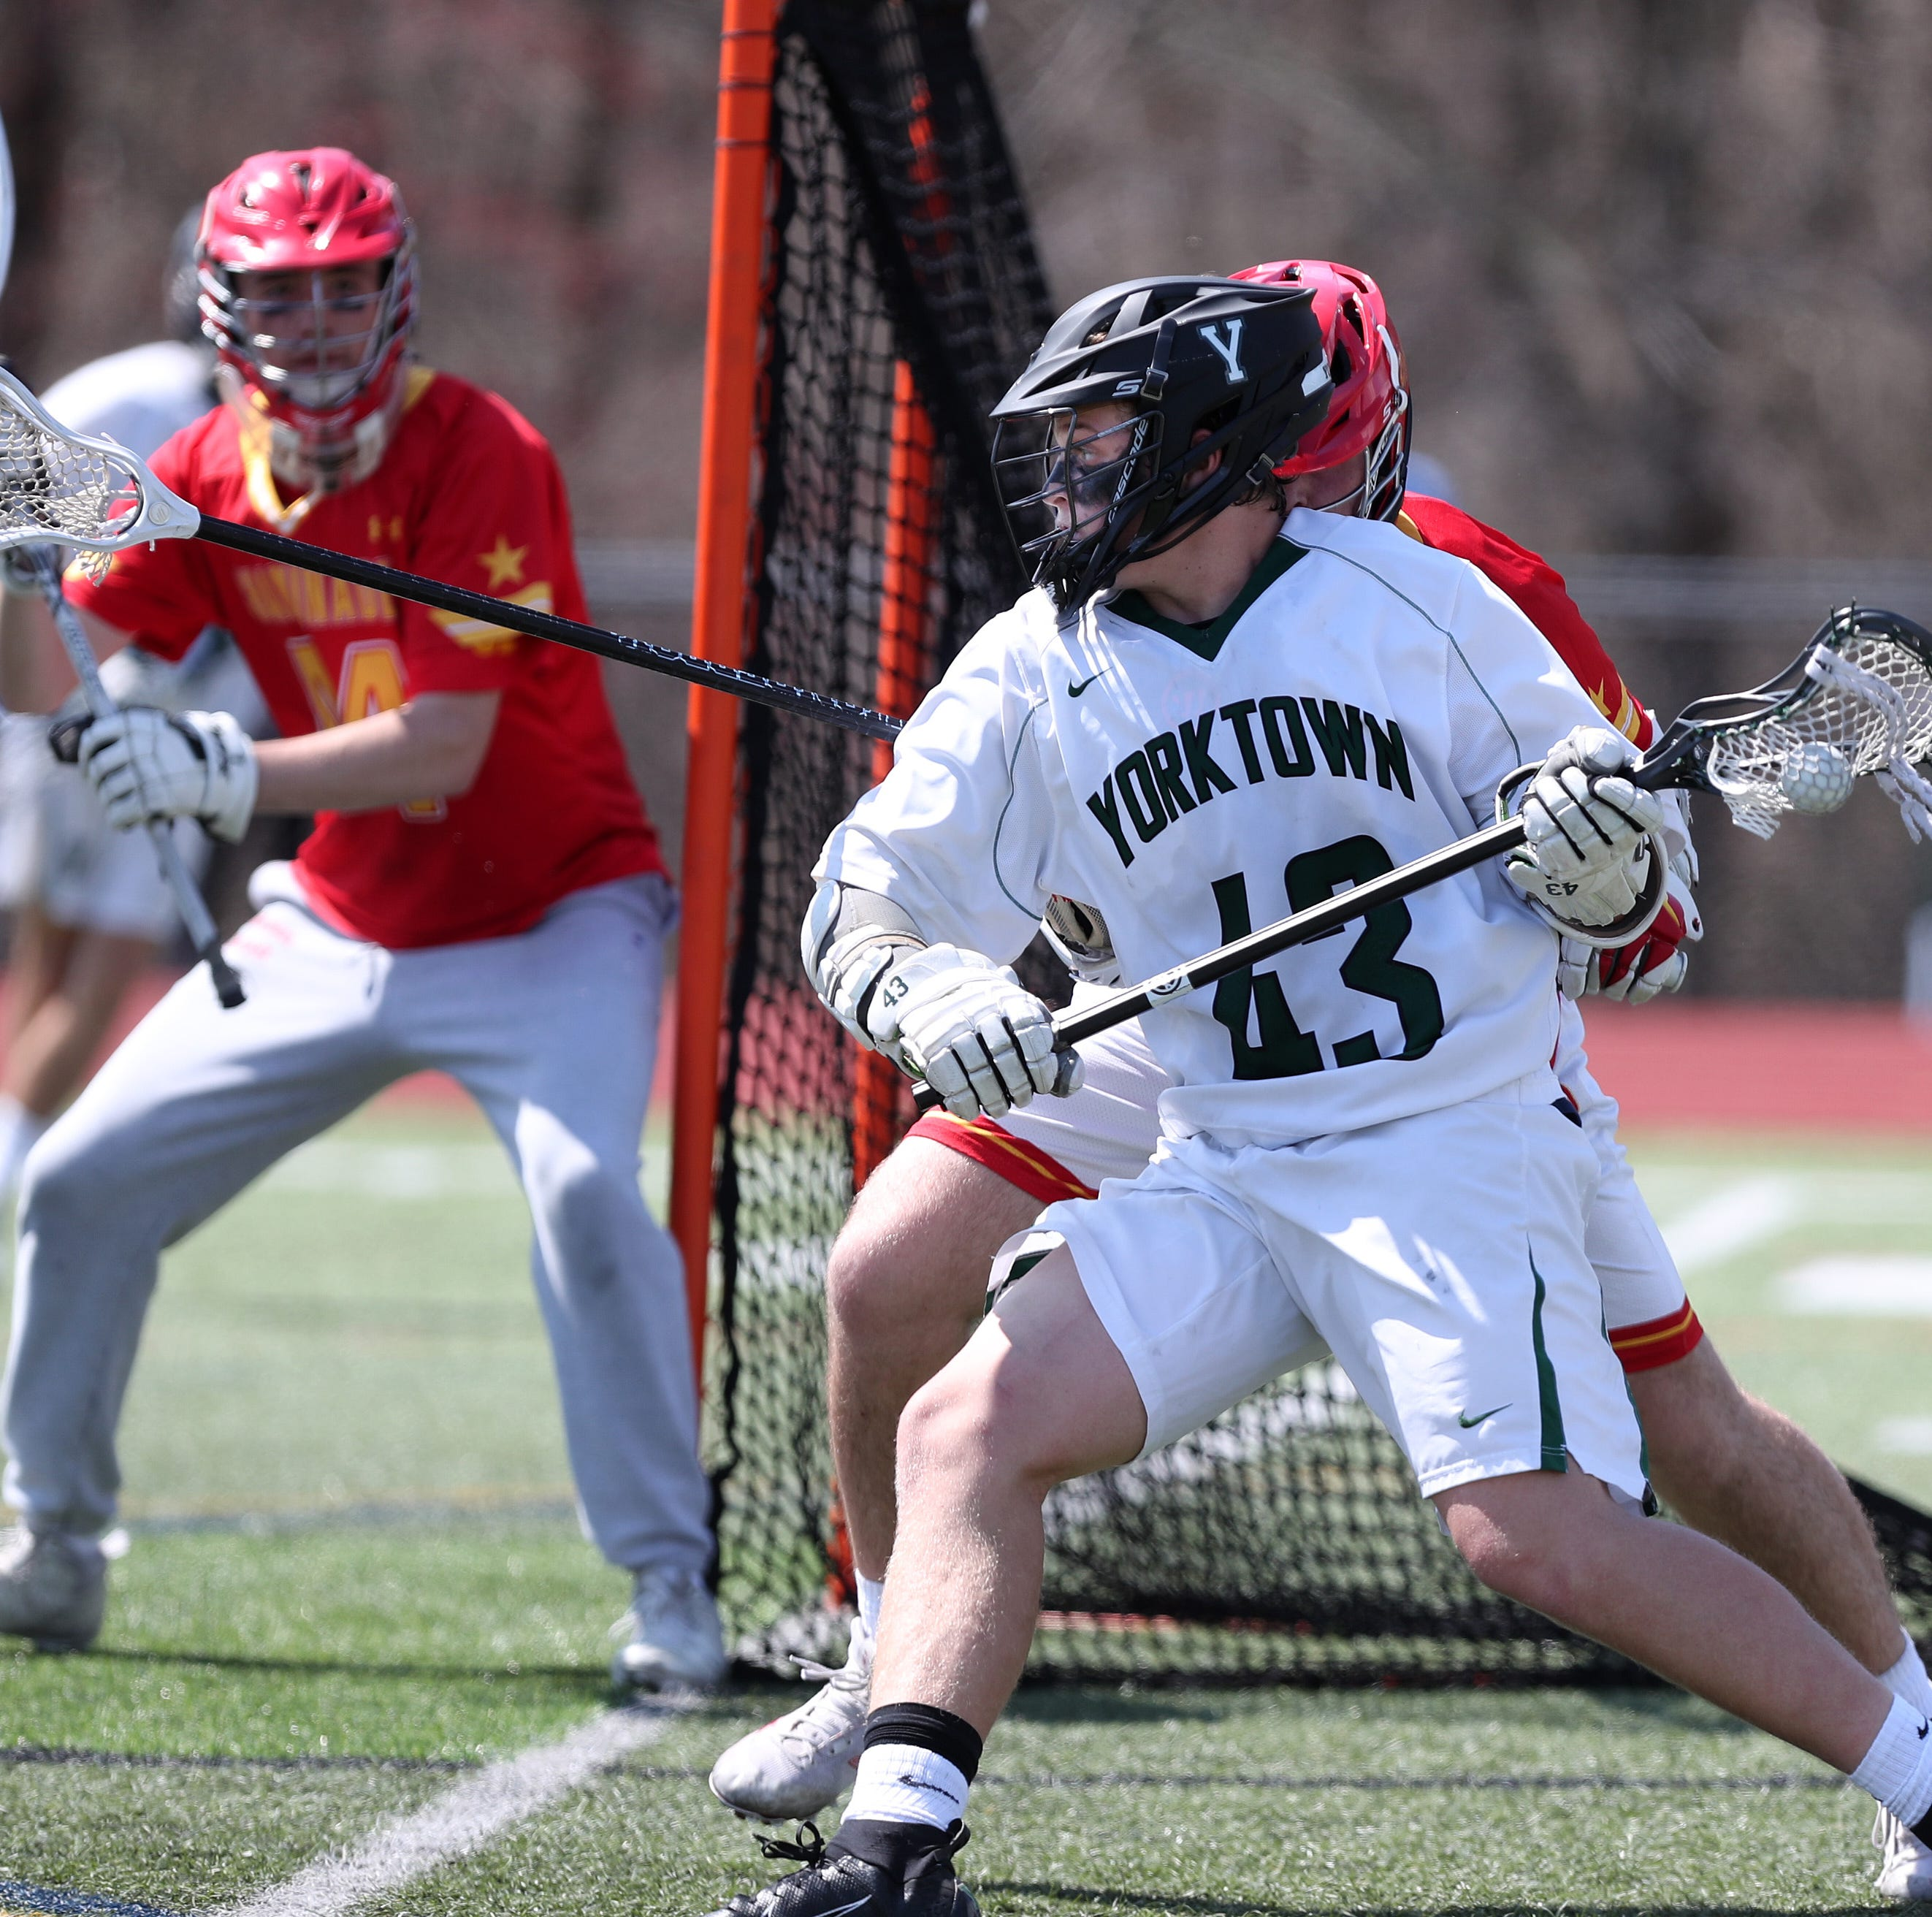 Boys lacrosse: Yorktown hopes to improve after loss to Long Island power Chaminade